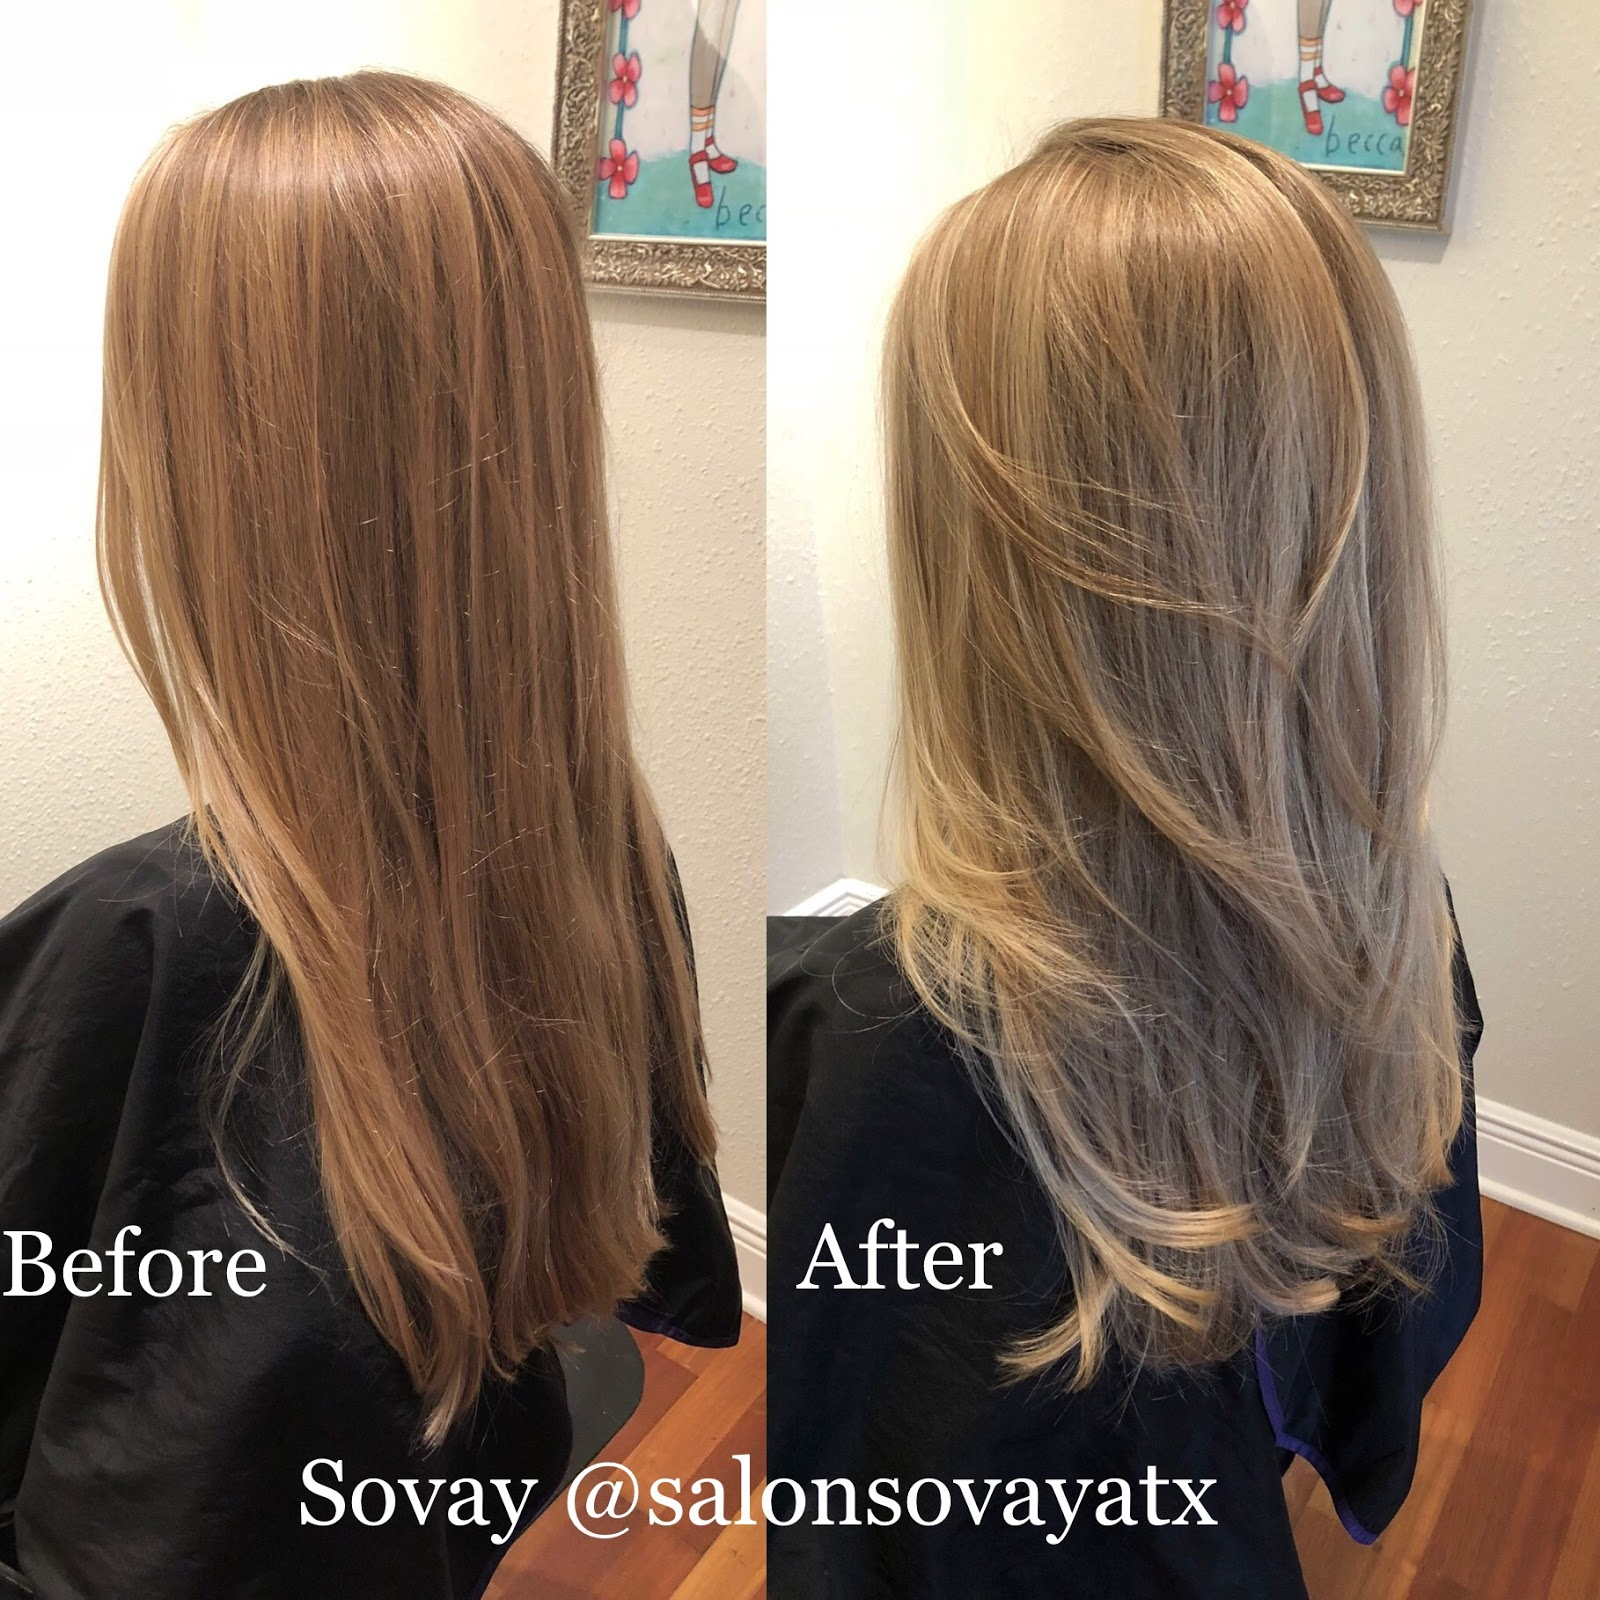 Highlights And Long Layered Haircut In Austin With Stylist Sovay